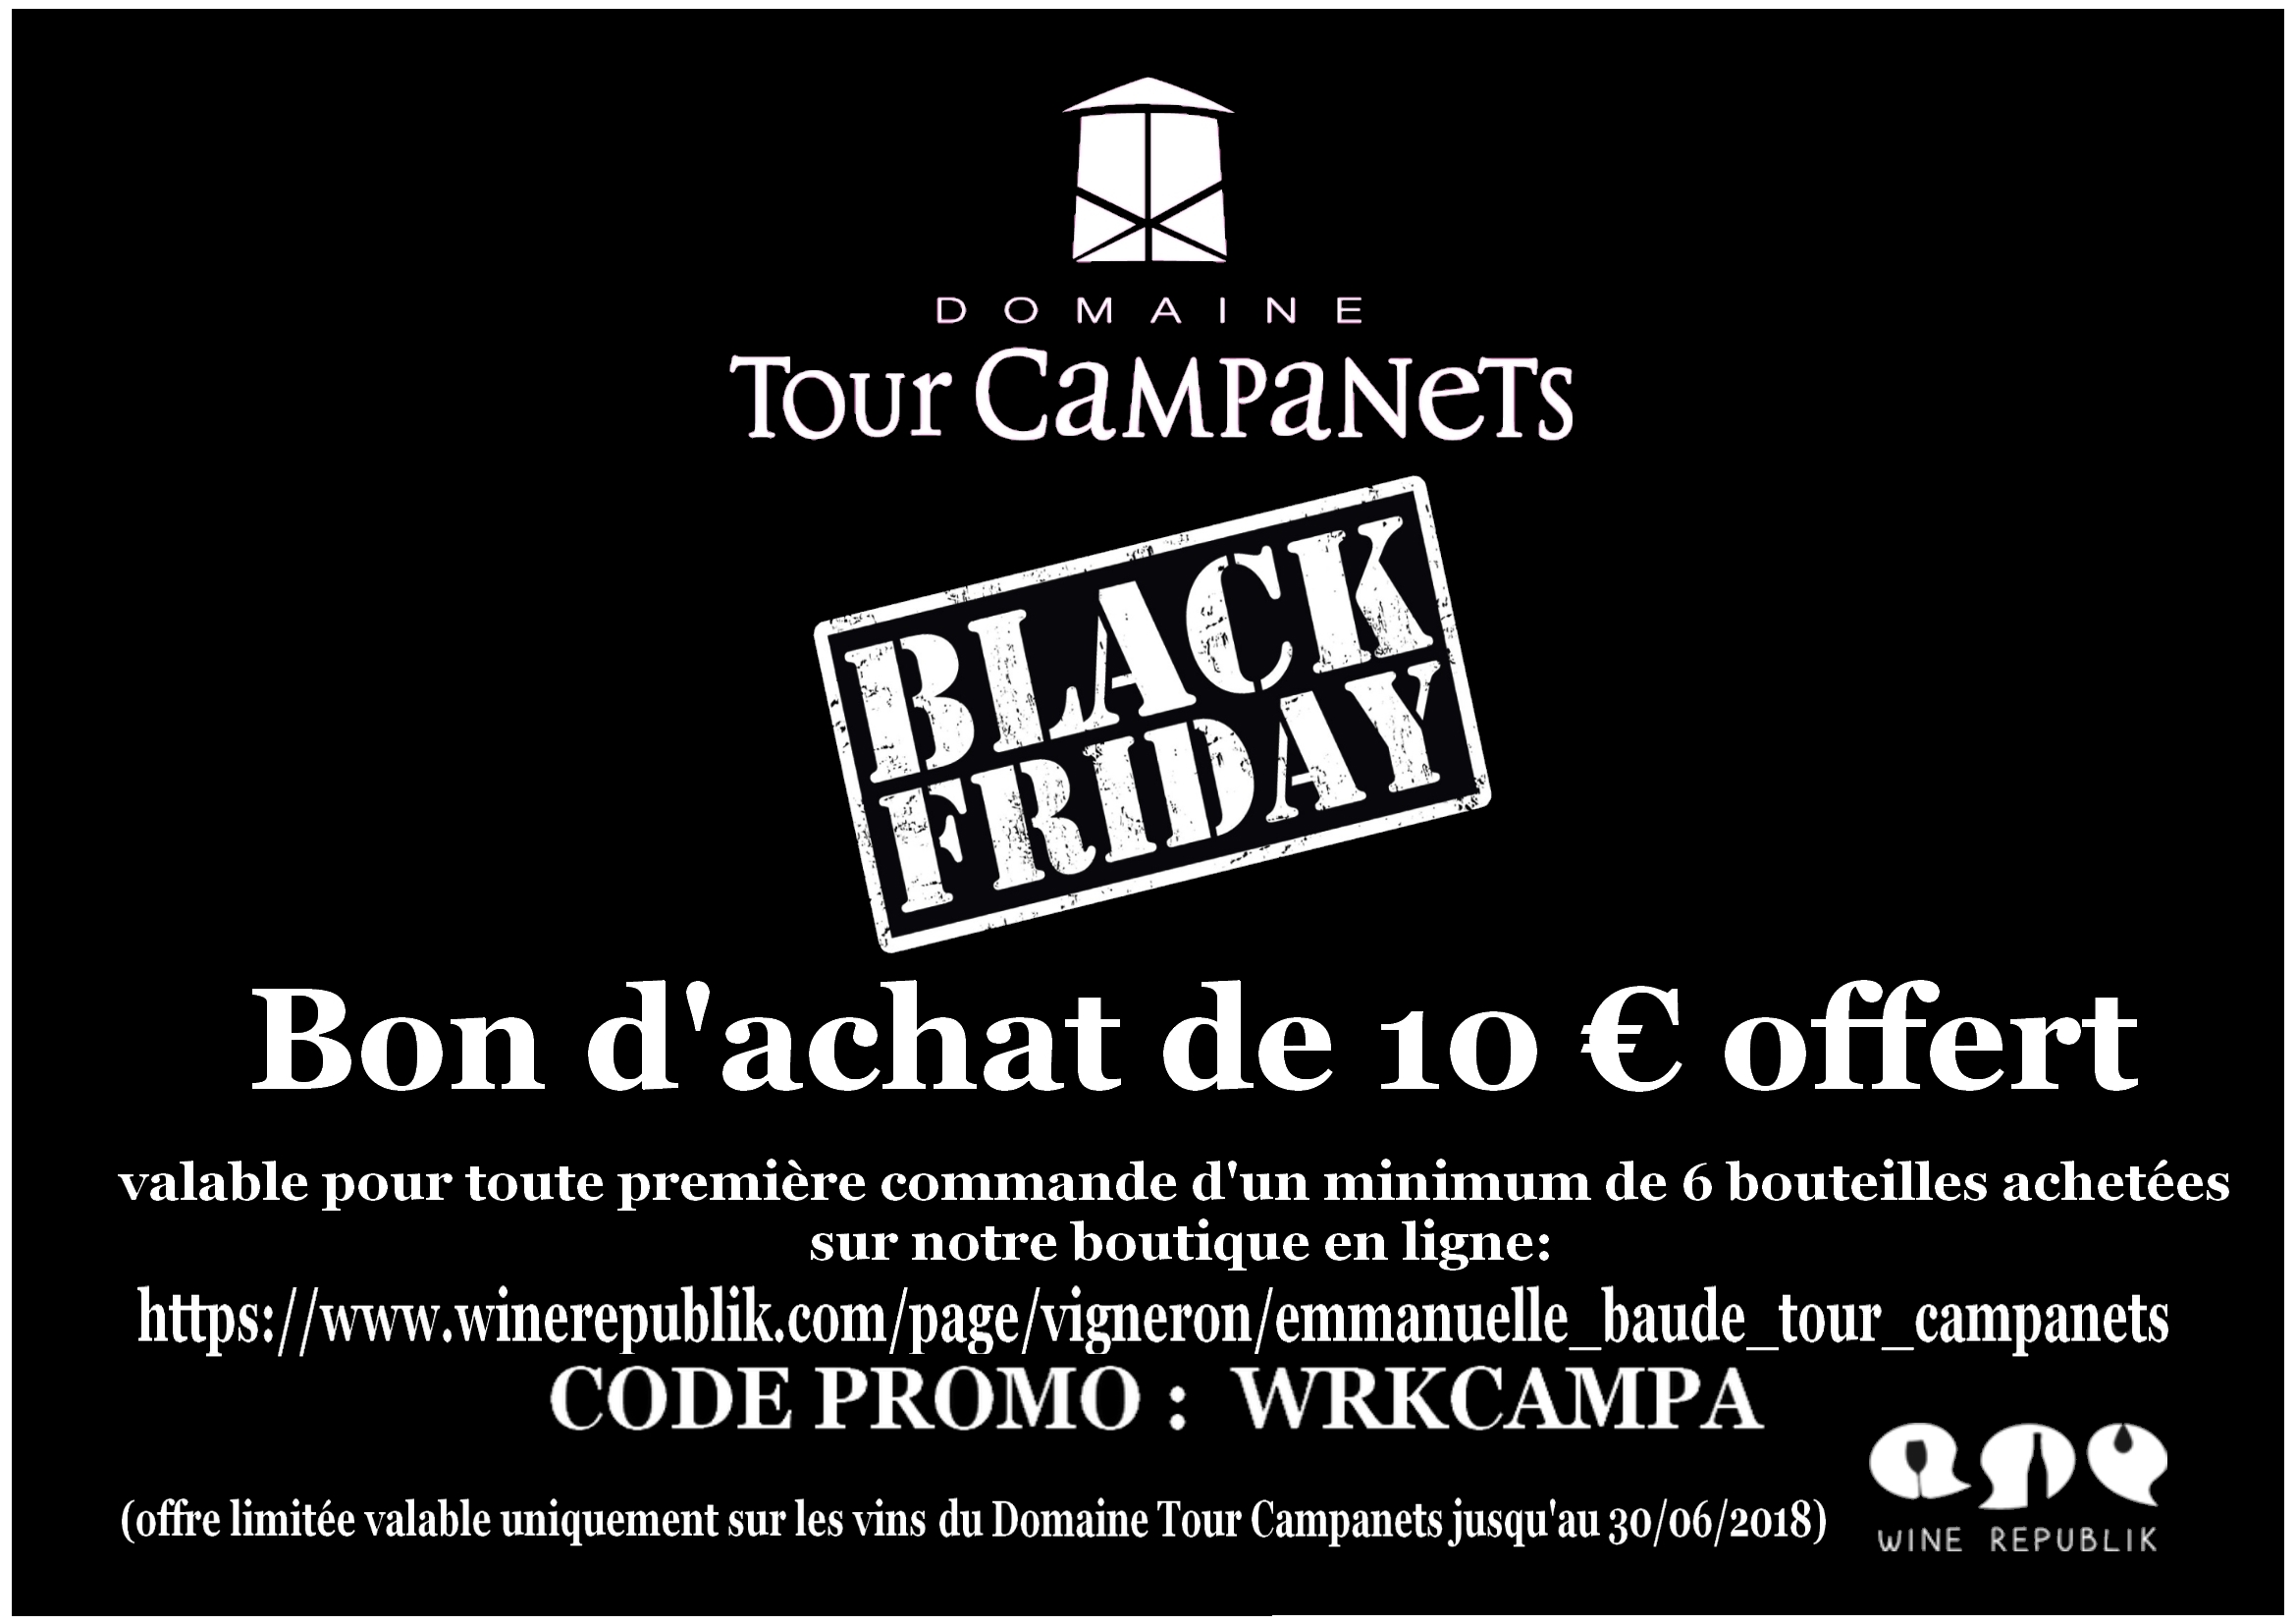 Black Friday Domaine Tour Campanets !